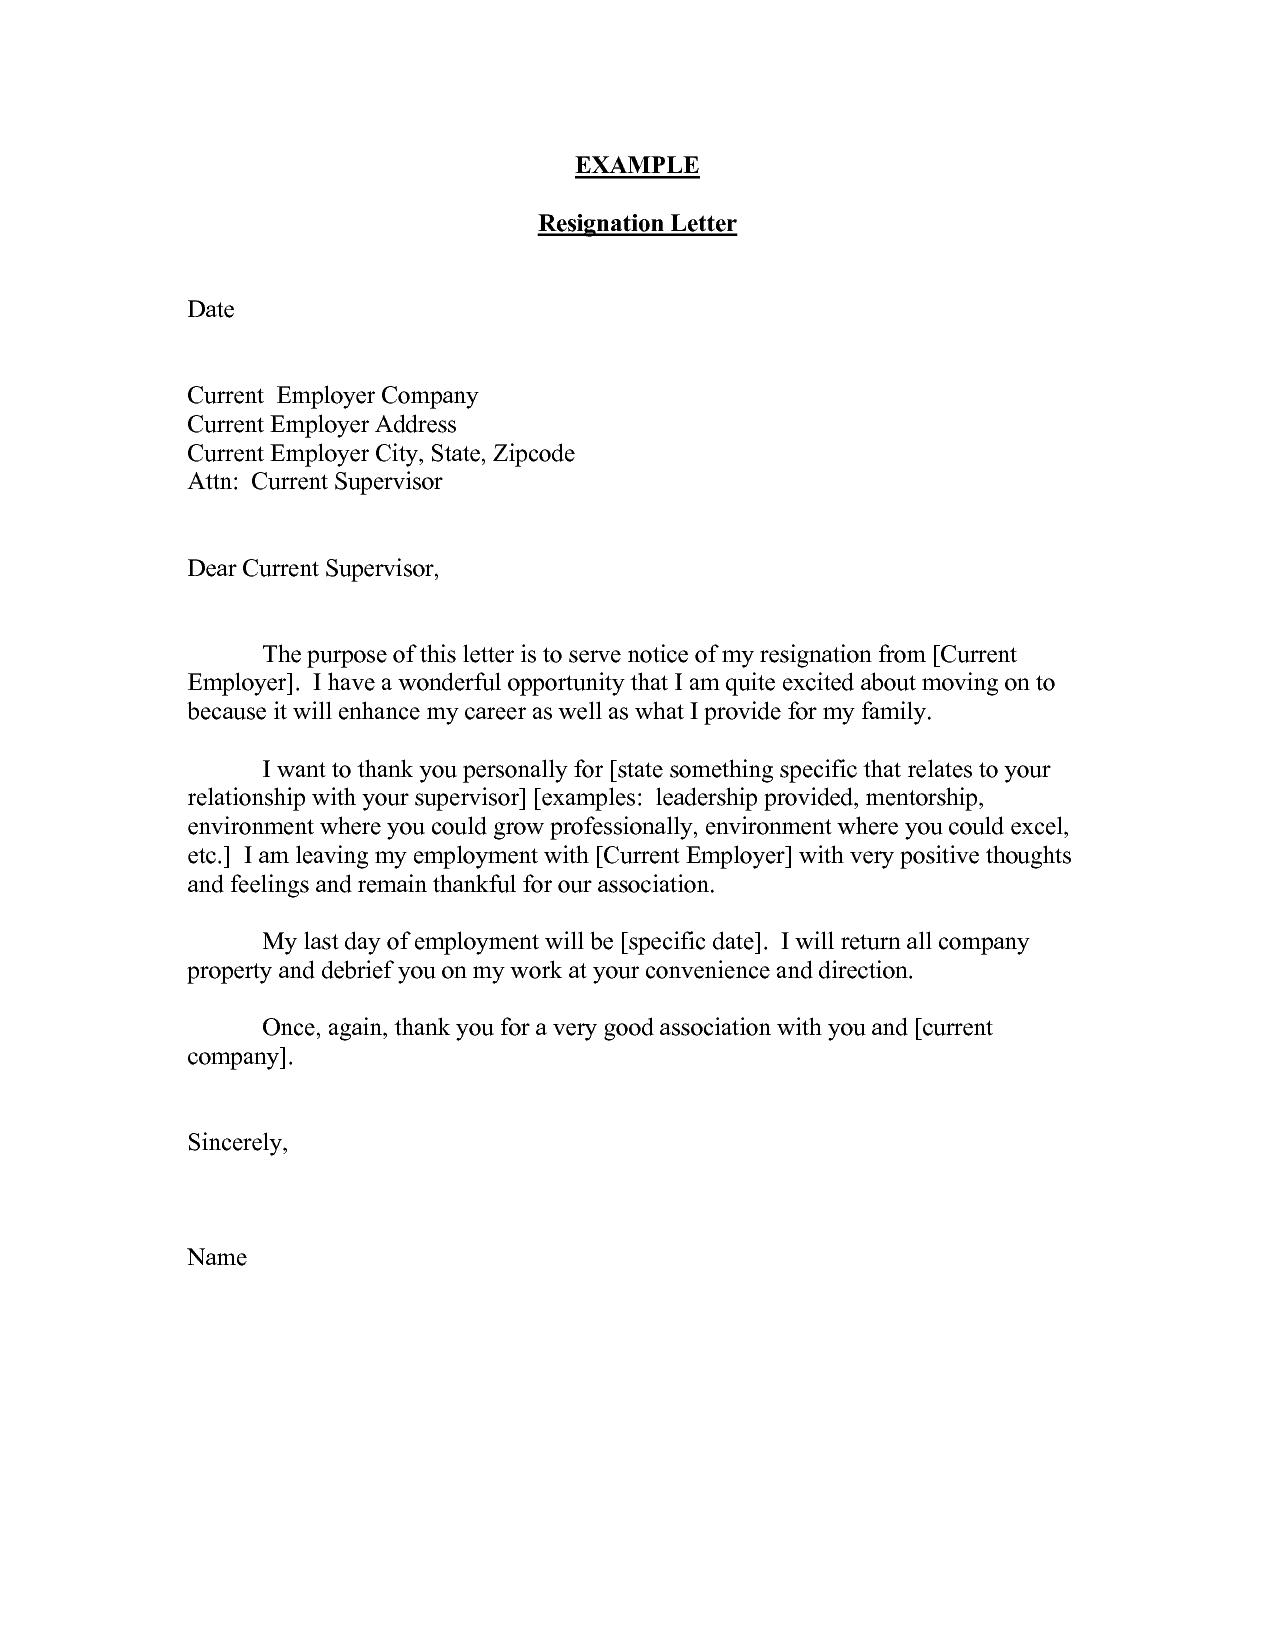 Resignation Letter Sample Doc Resume And Letter SampleWriting A – Sample Resignation Letters